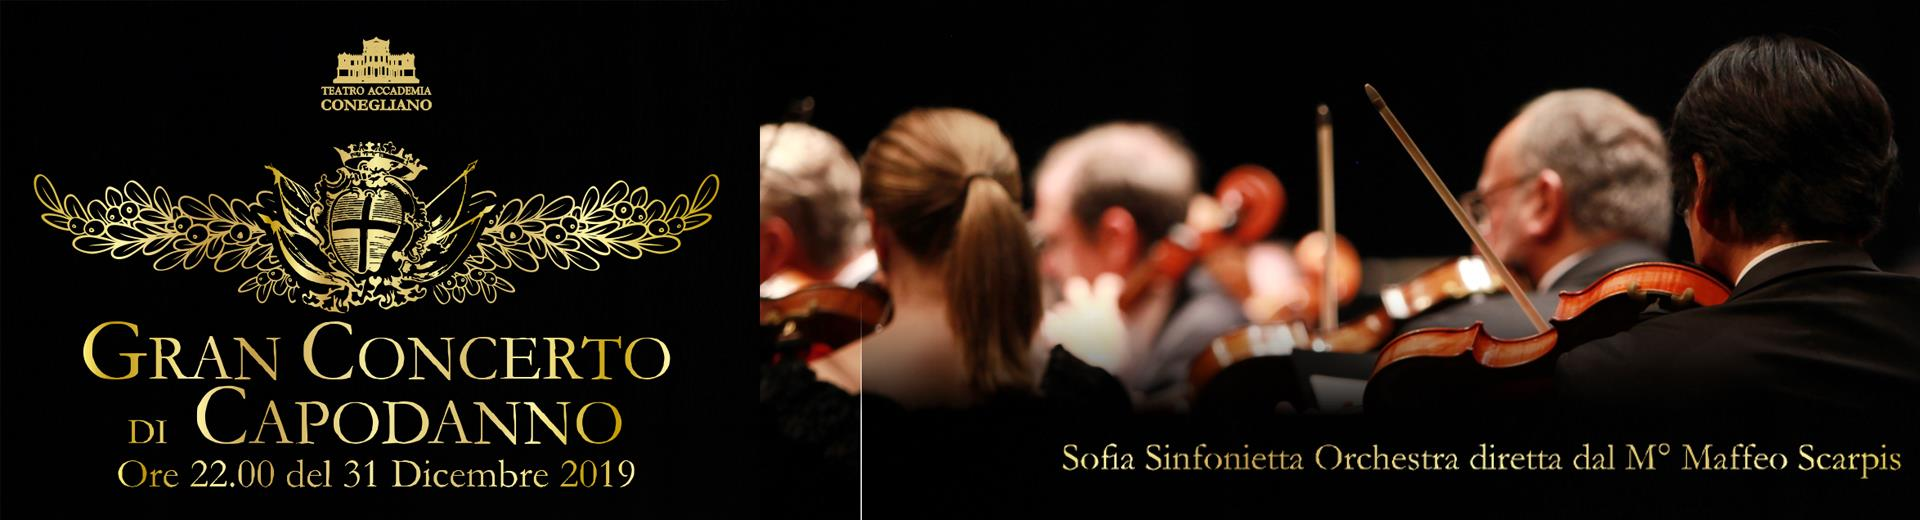 Sofia Sinfonietta Orchestra conducted by M° Maffeo Scarpis  December 31st 2019 - h 22:00